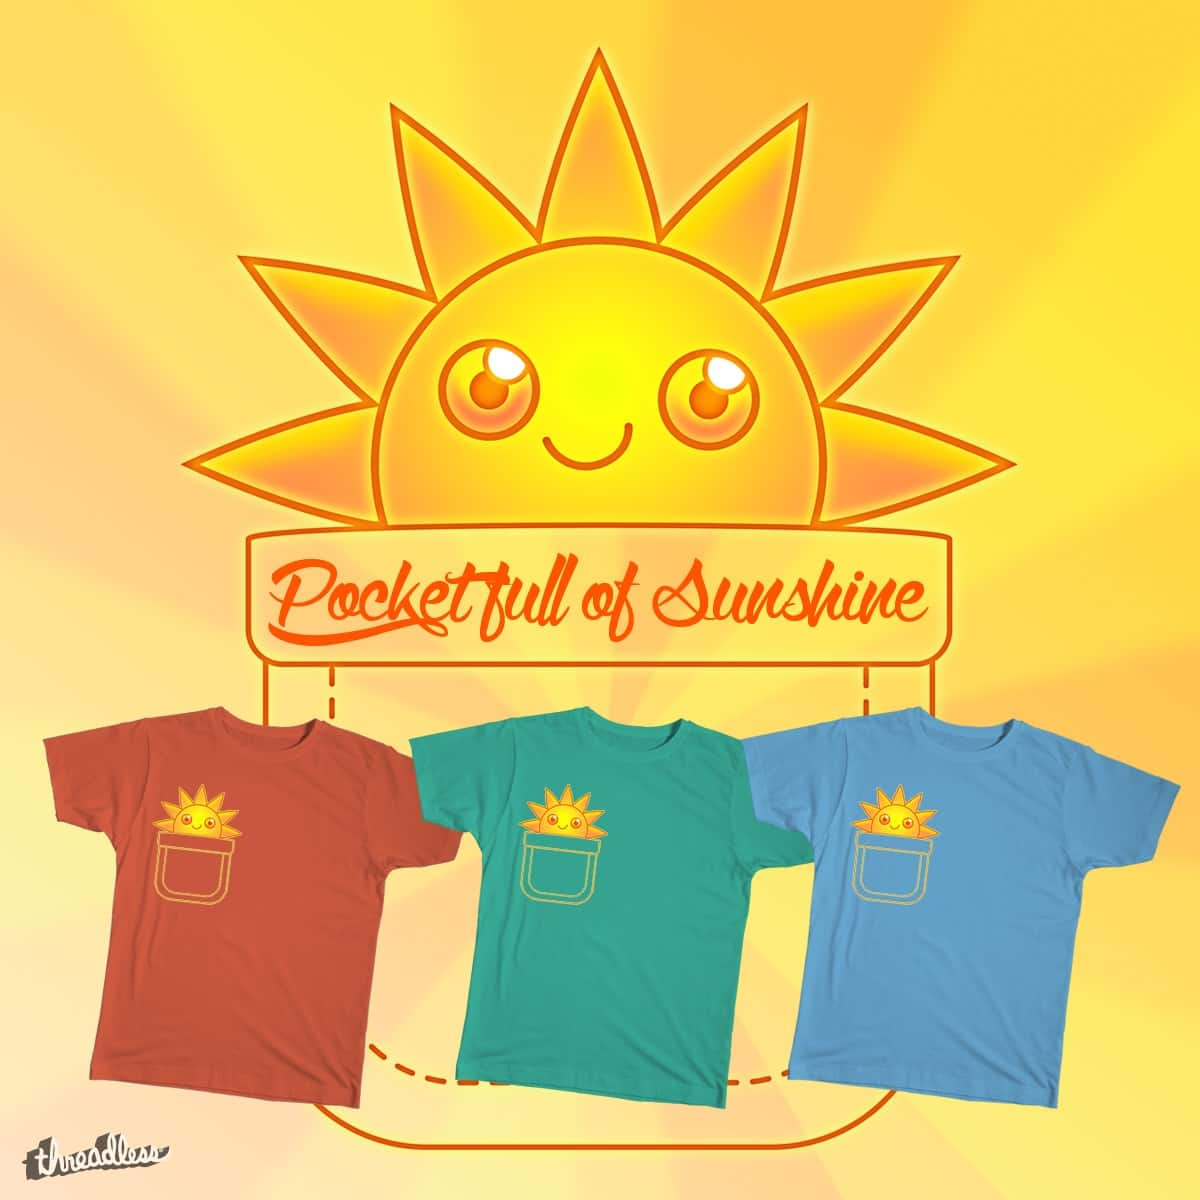 Pocket Full of Sunshine! by Helenasia on Threadless